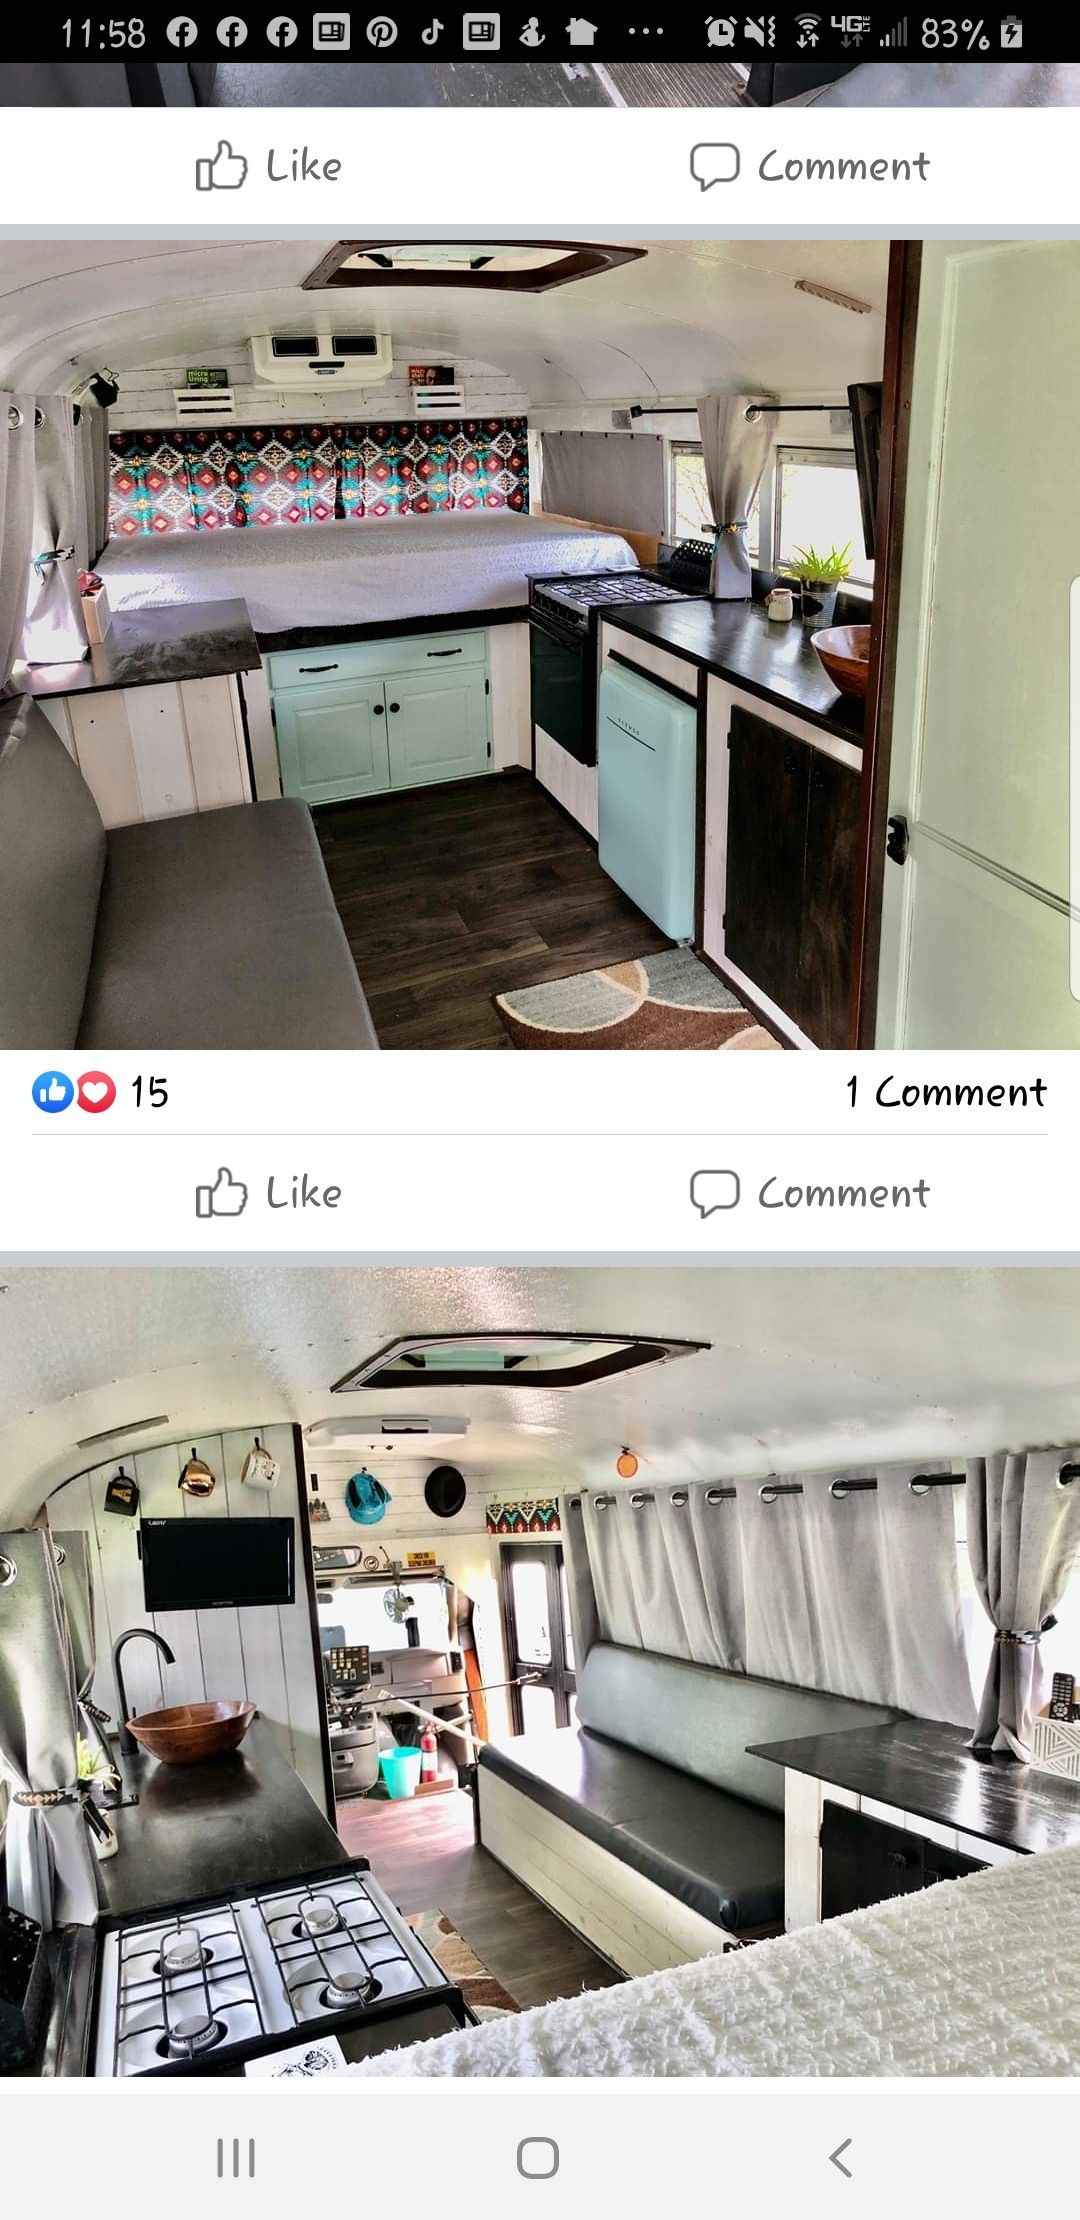 Pin by S Niles on RV renovation in 2020 | Kitchen cabinets ...